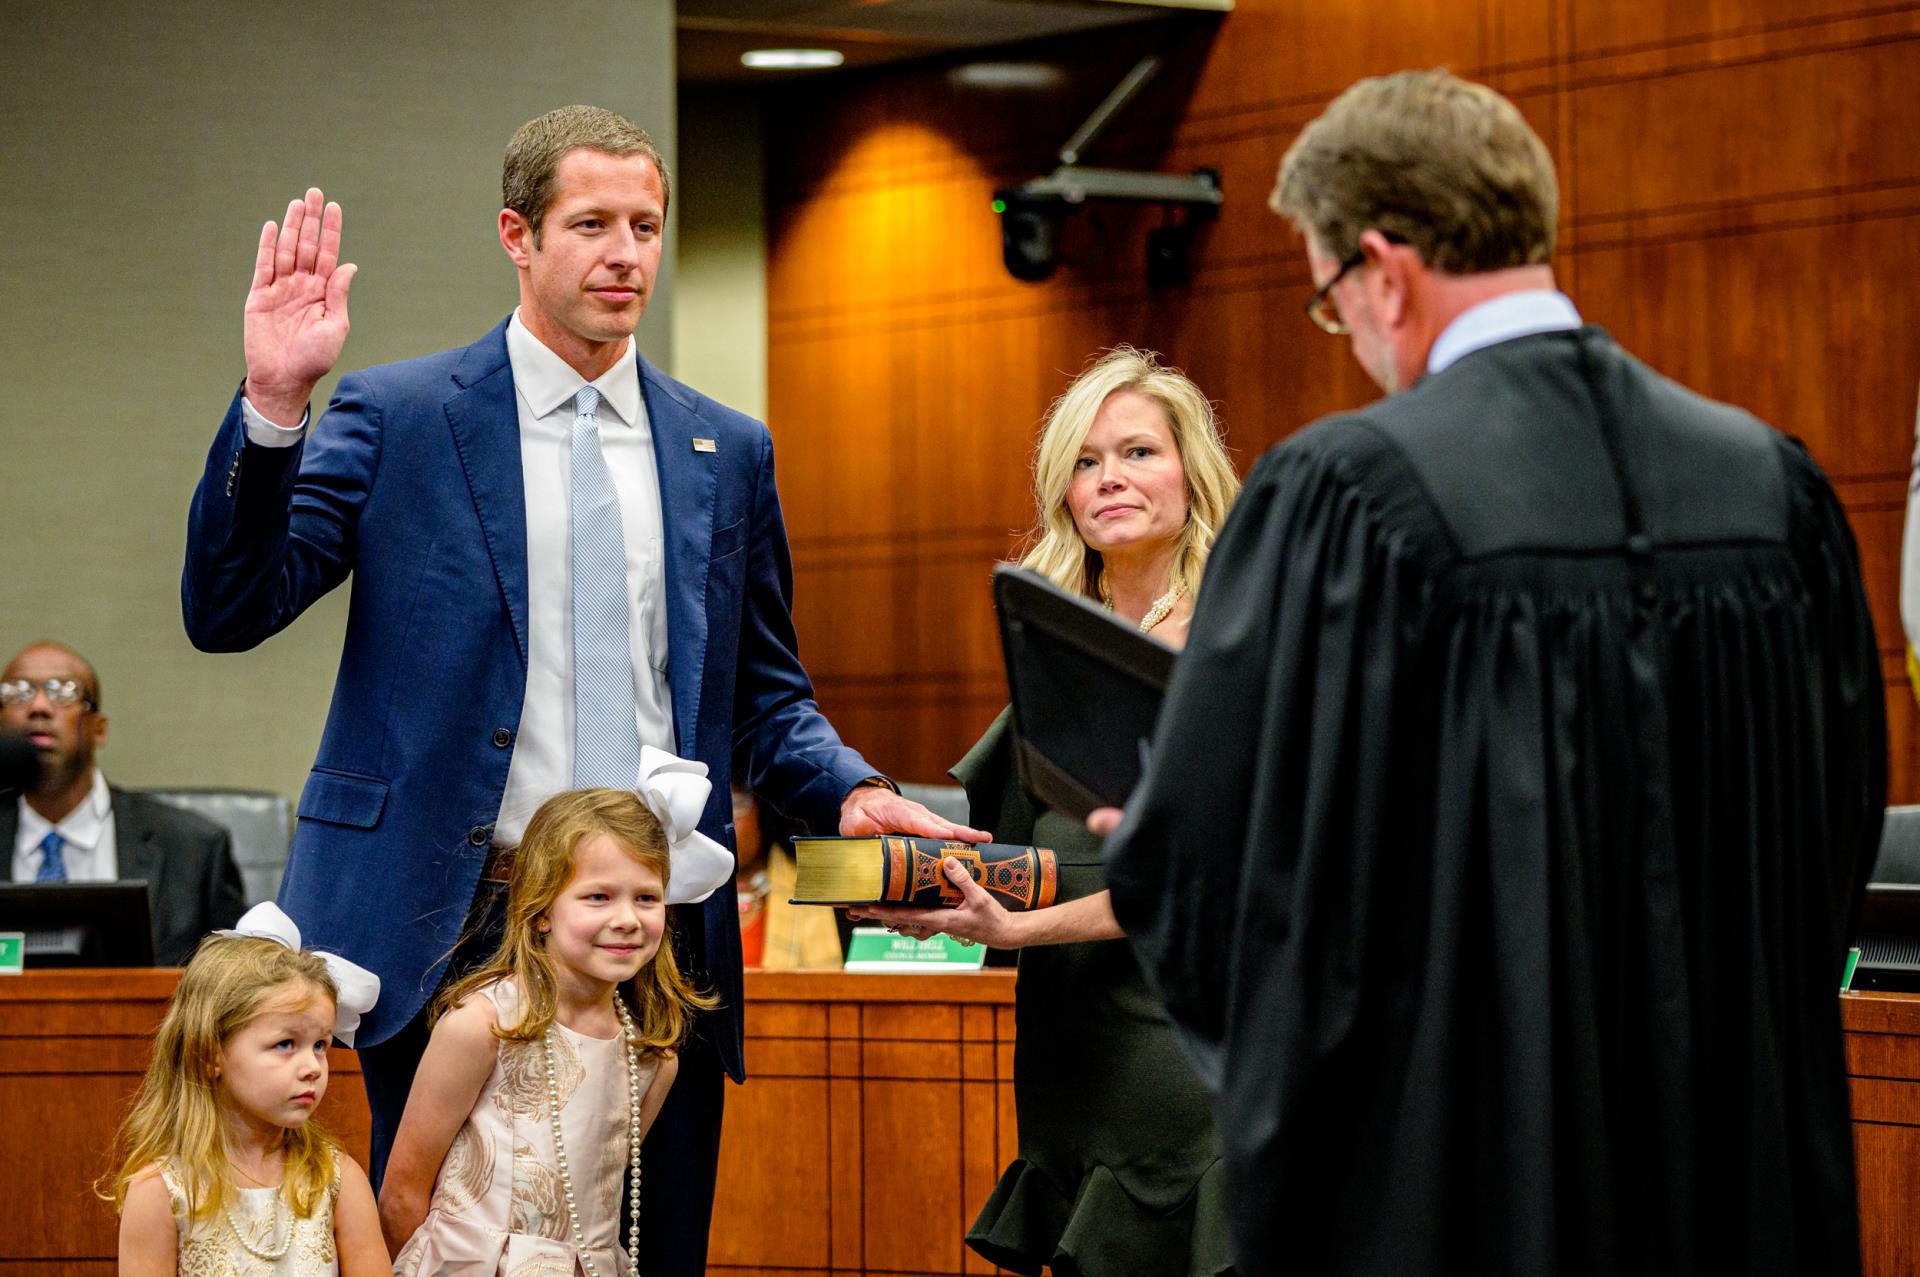 Mayor and City Council Sworn into Office; Connelly Calls on Community to Unite